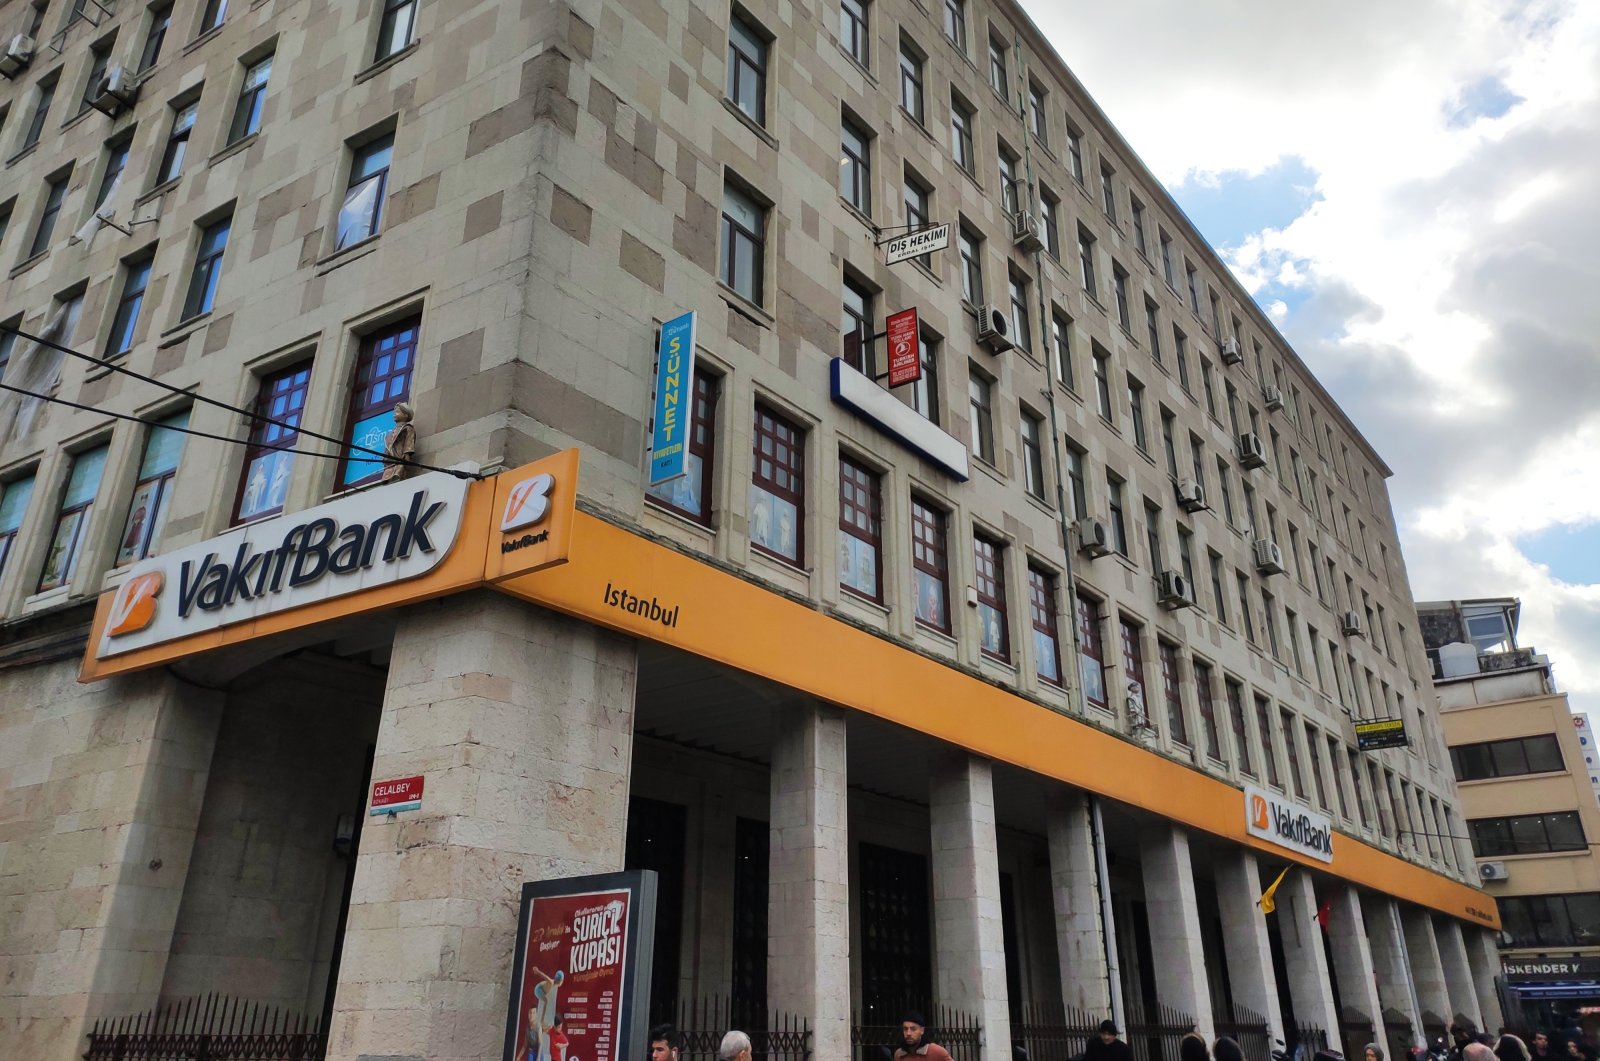 Vakifbank's Eminönü branch in Istanbul, Turkey, May 2020. (Shutterstock Photo)